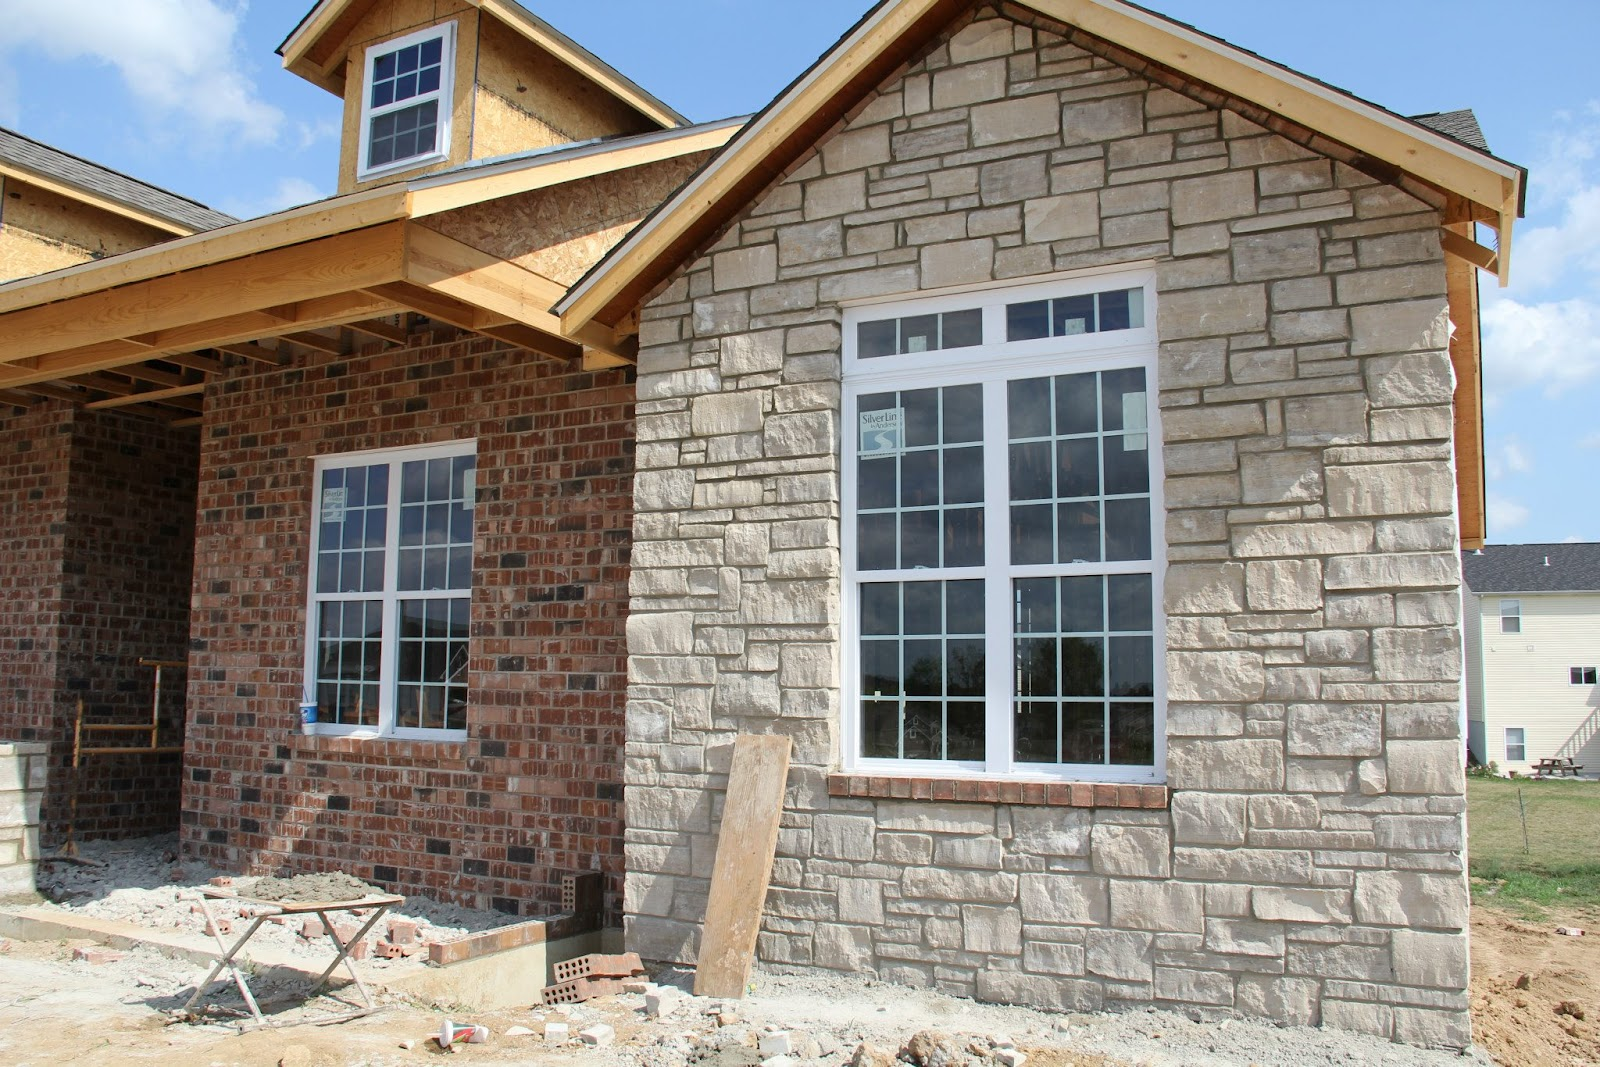 Our New Home: The Exterior - Brick, Stone, and Siding